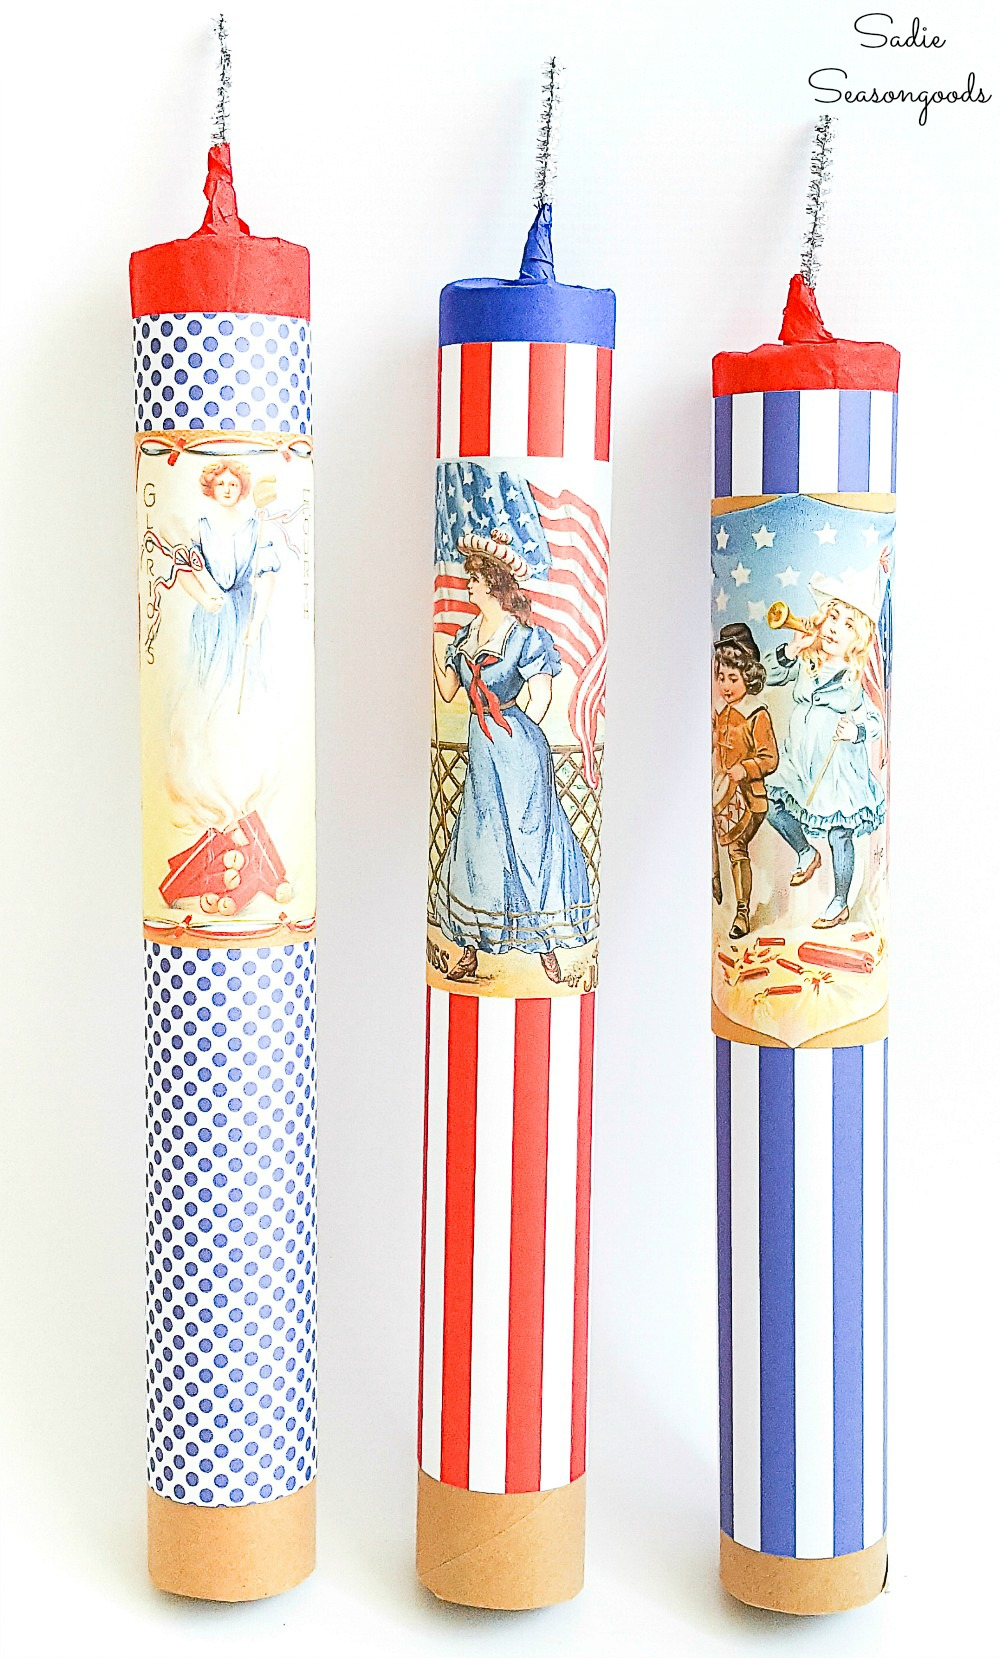 Cardboard tubes as fake firecrackers for Independence Day decorations